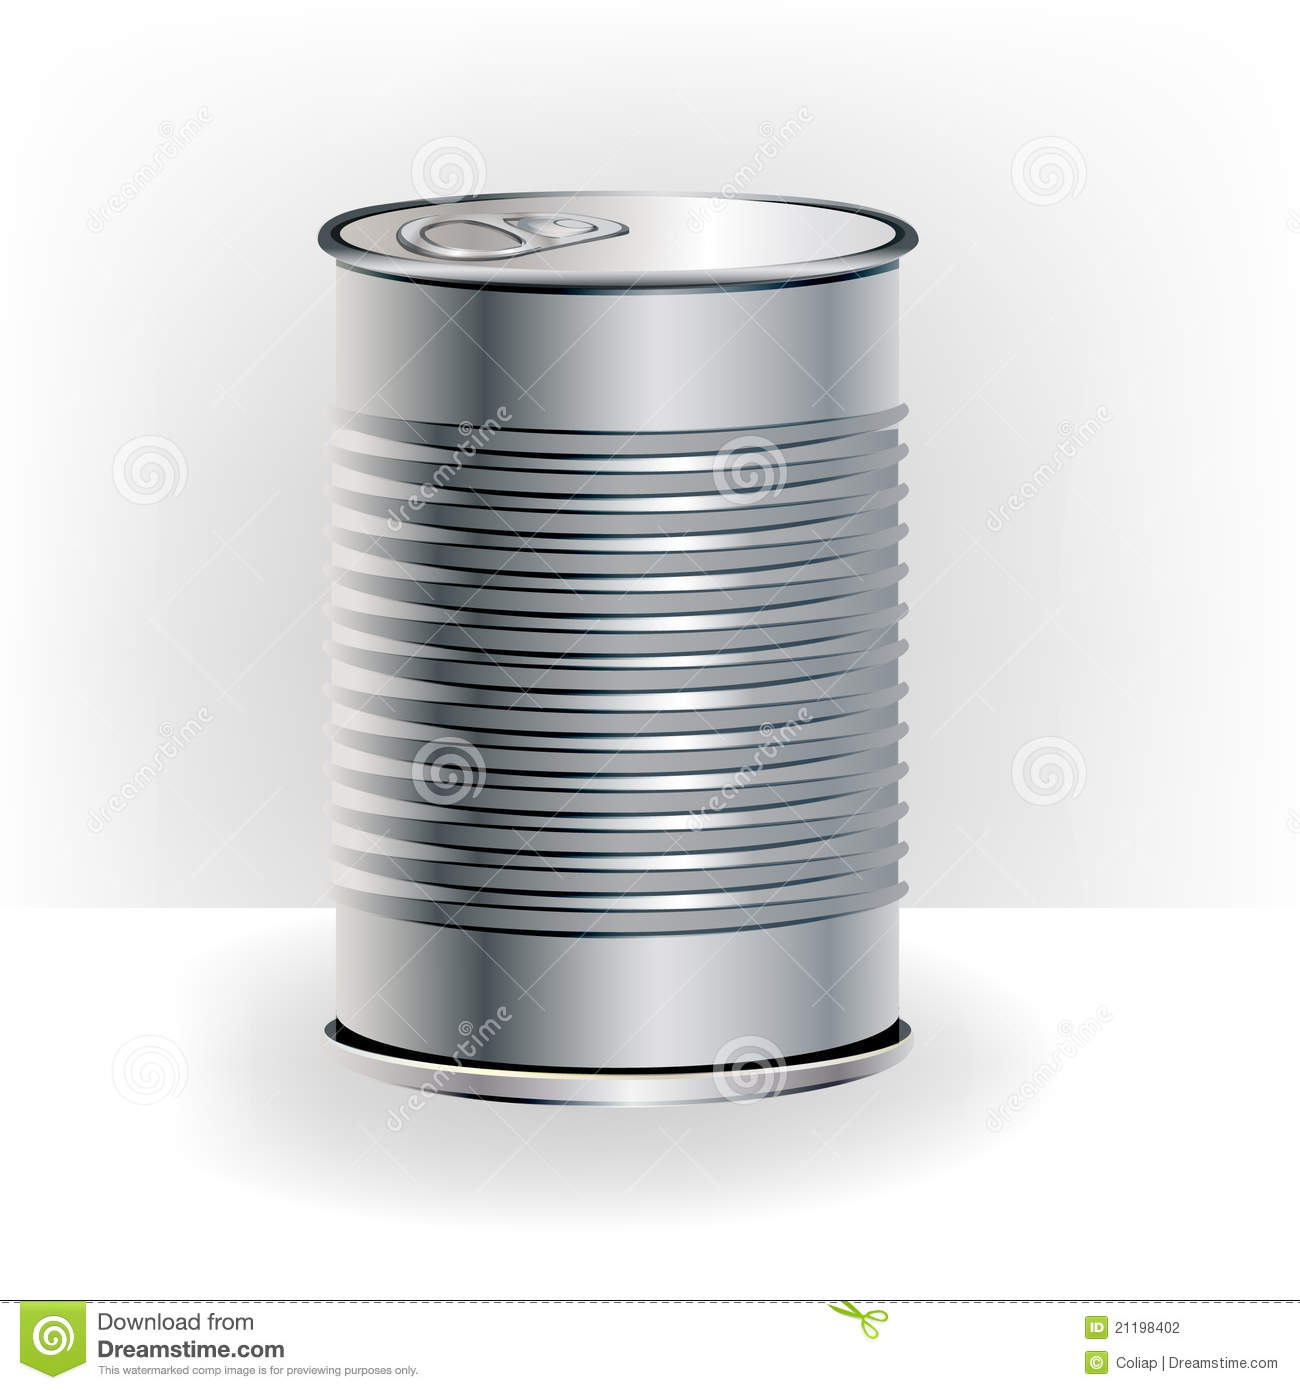 Single aluminum food can stock photography image 21198402 for Cuisine aluminium